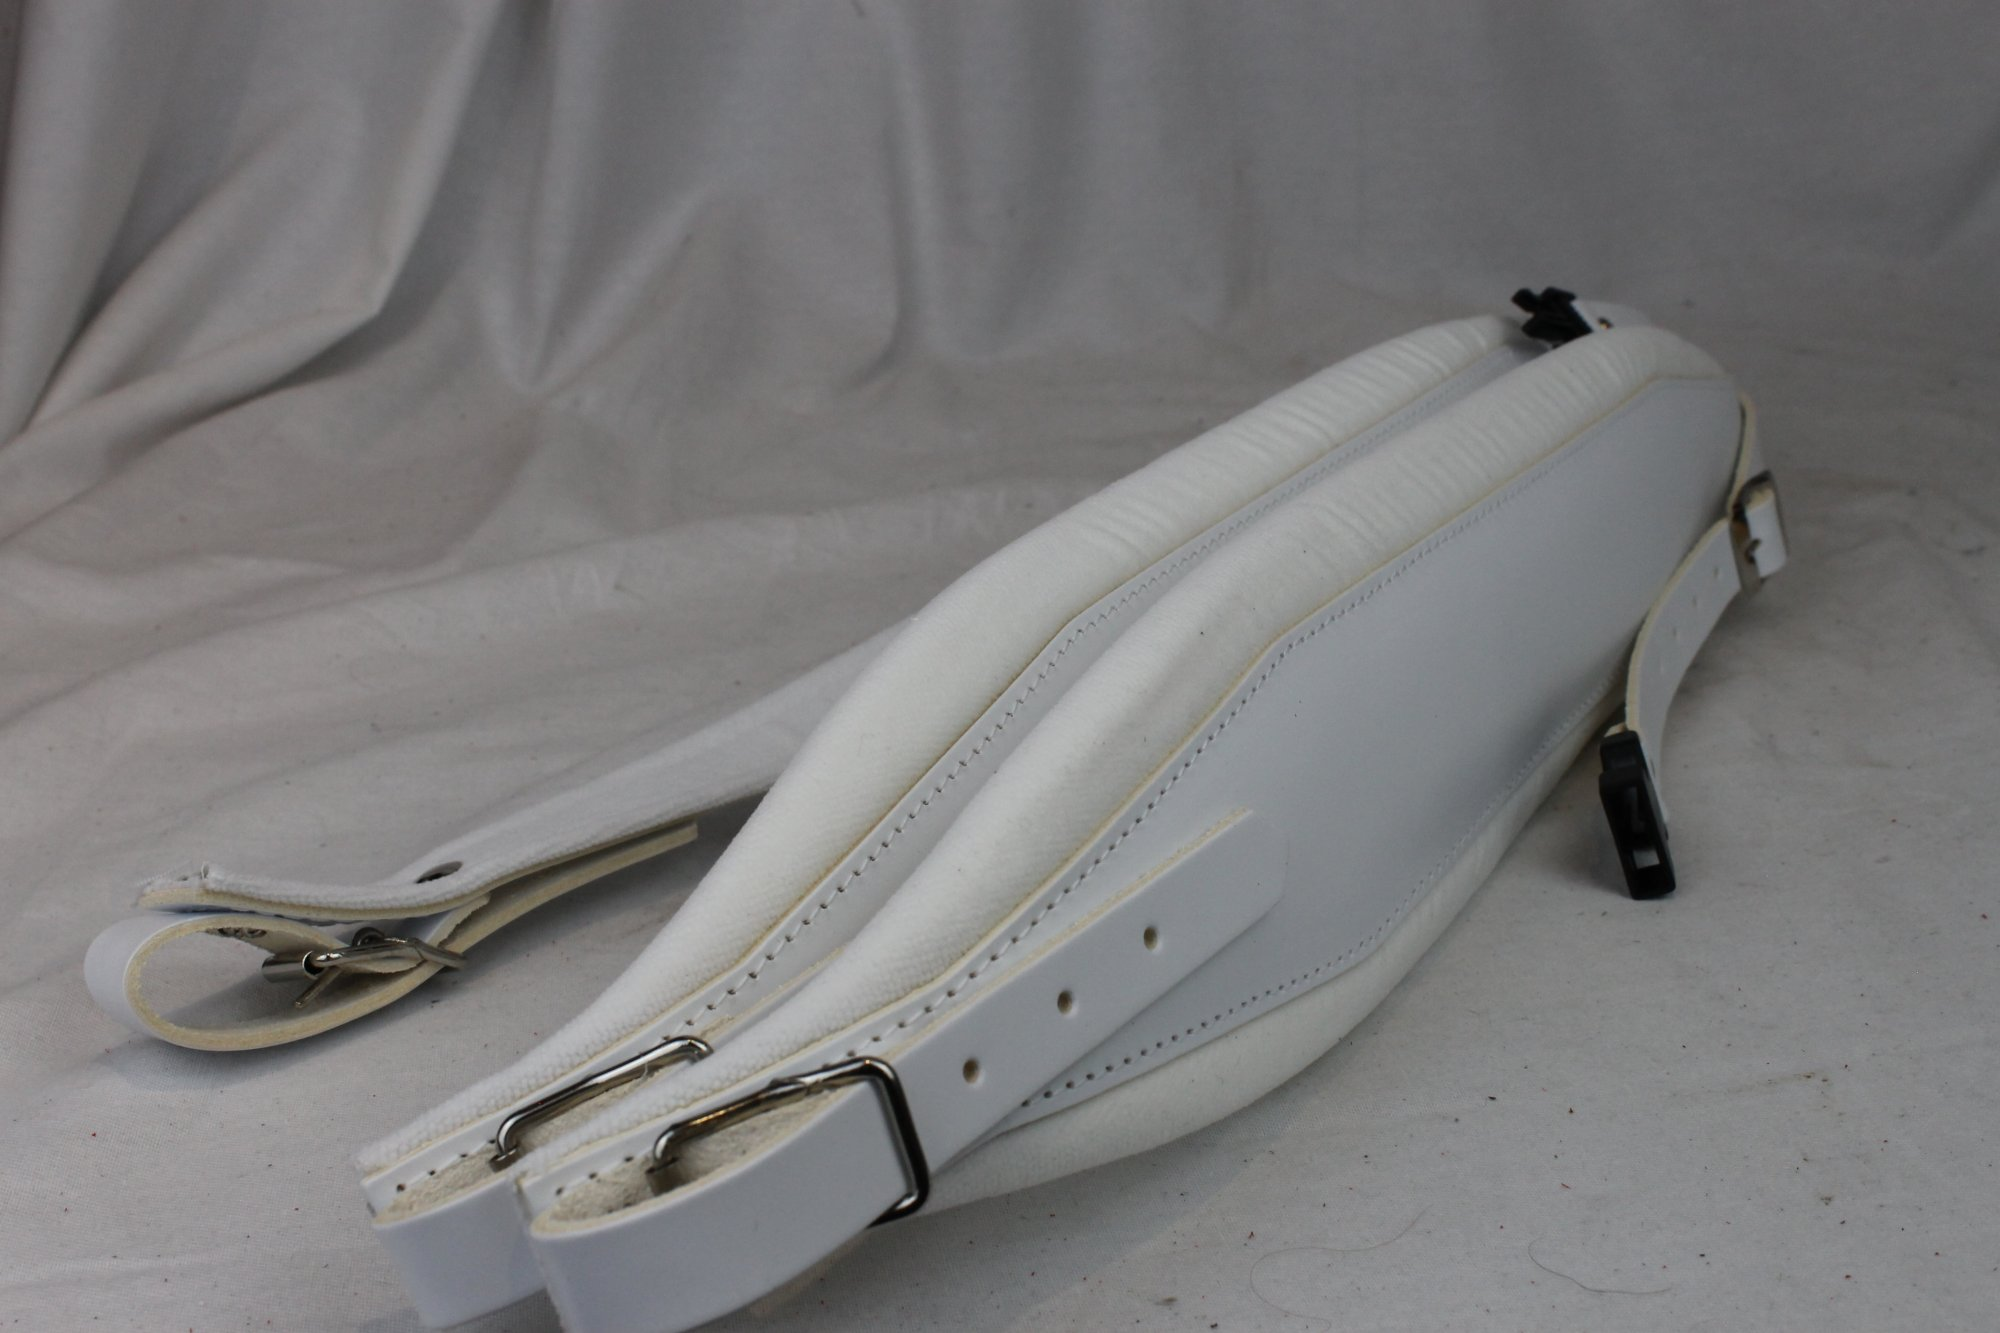 New White Leather Velour Fuselli Accordion Shoulder Straps Width (10cm / 3.9 inch) Length (105cm-123cm / 41.3-48.4 inch)